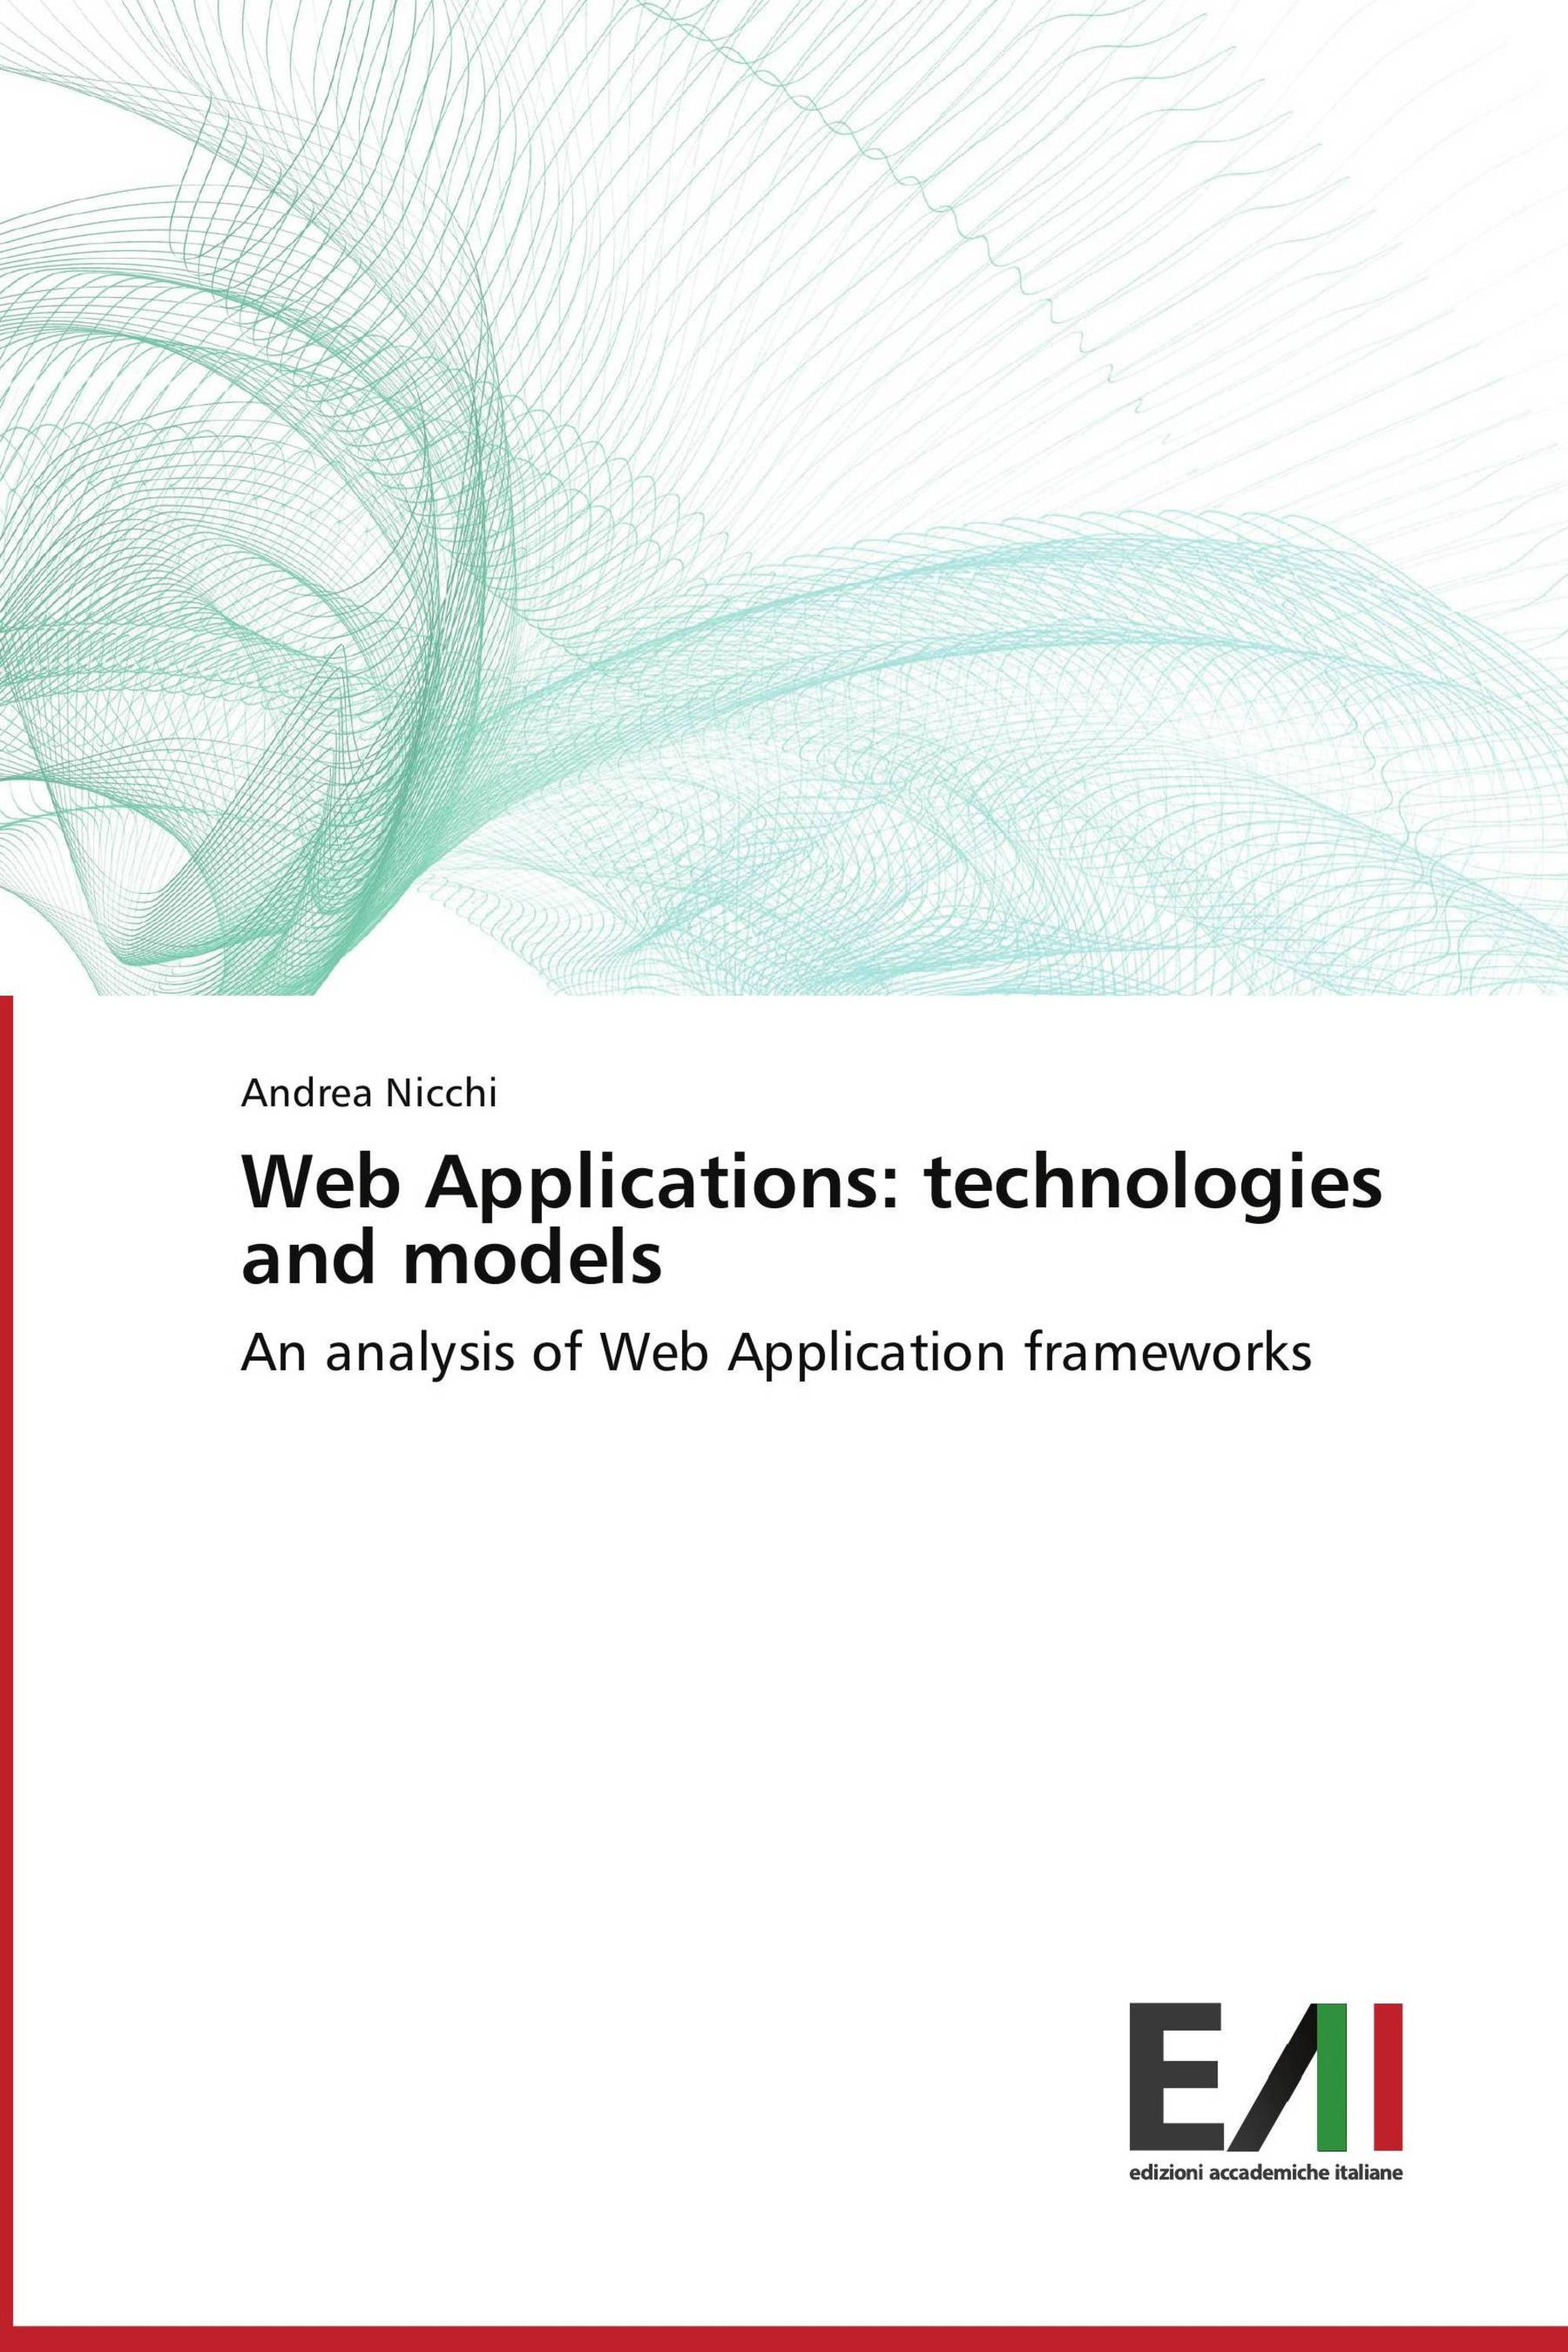 Web Applications: technologies and models